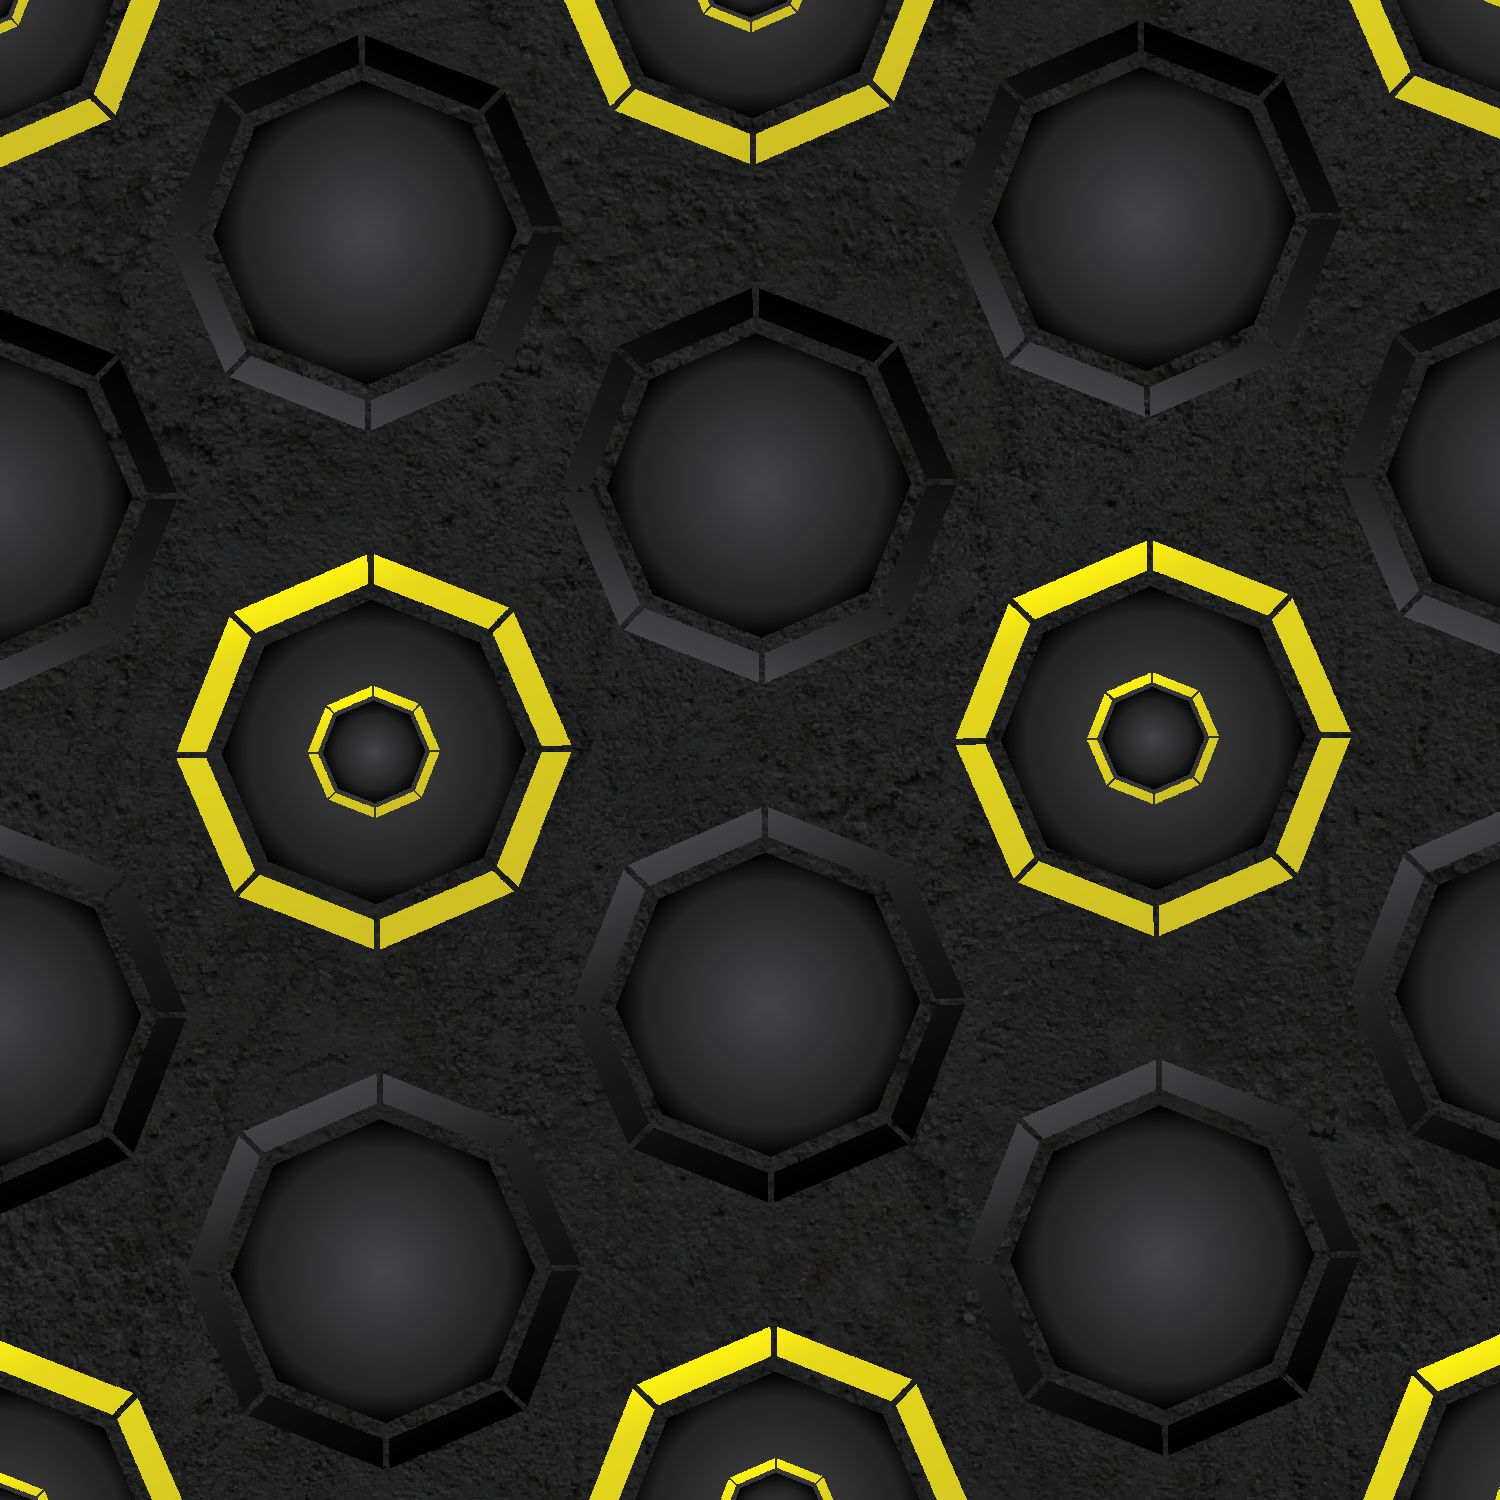 Dark Octagons with Yellow